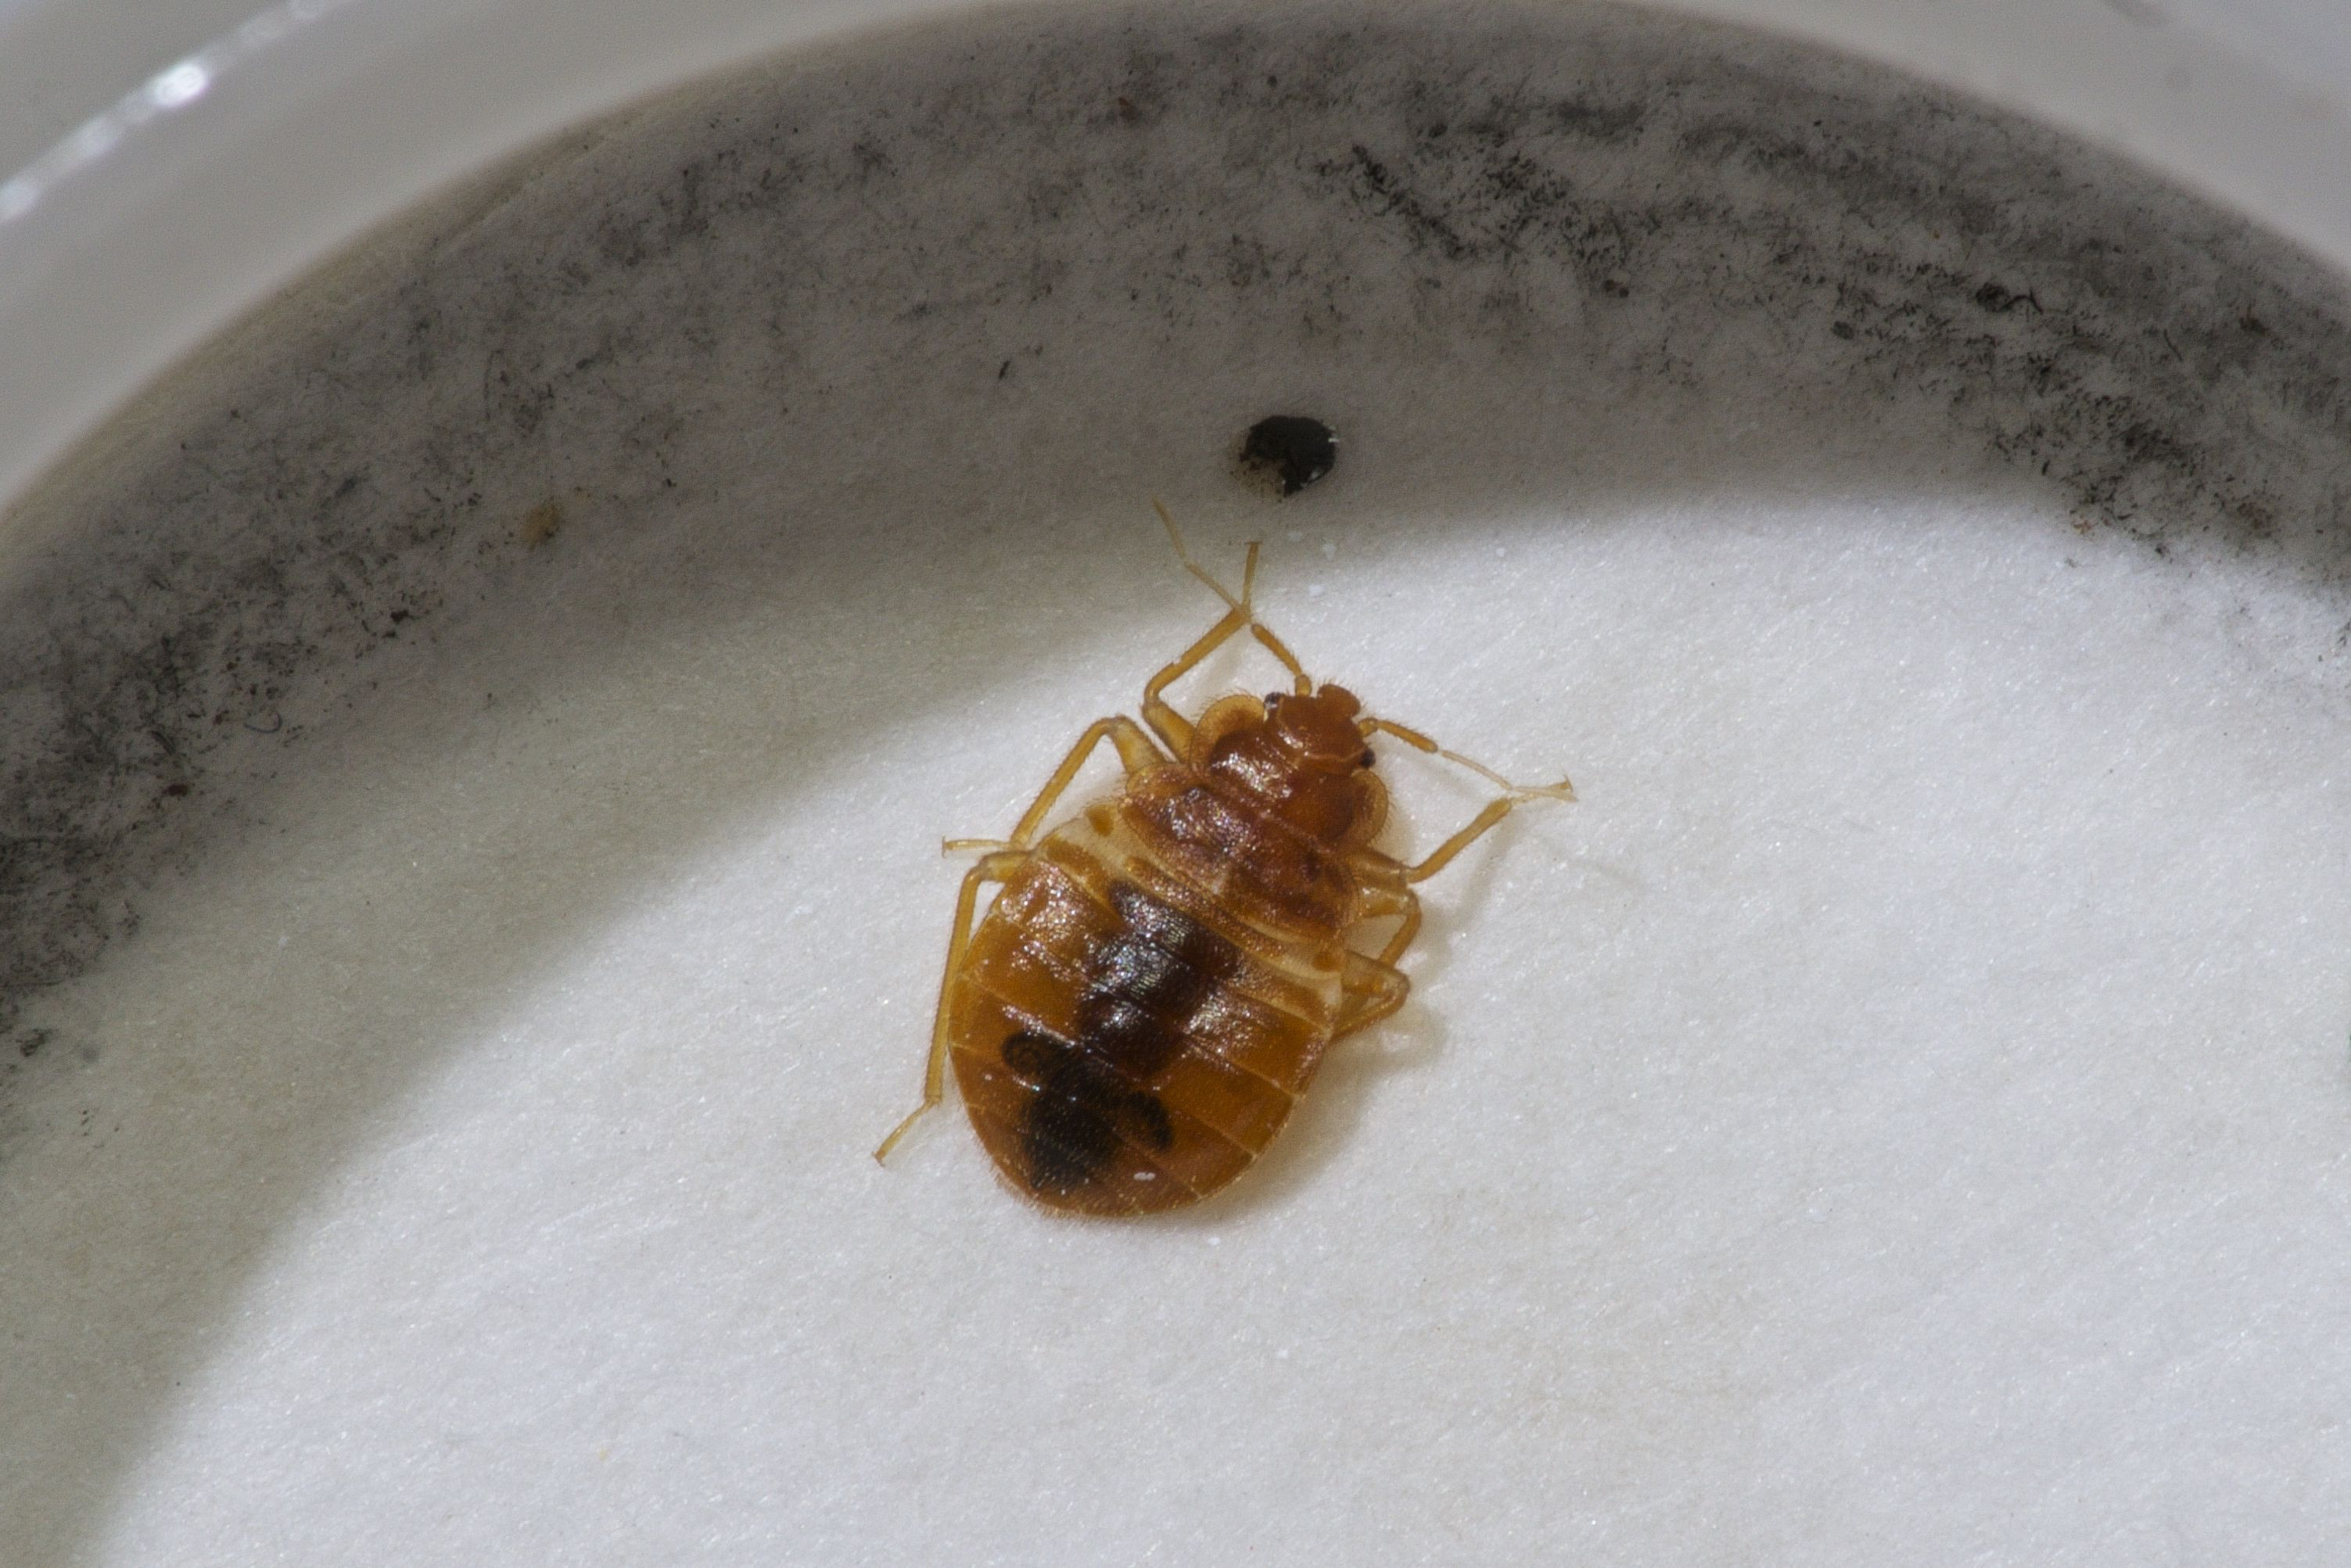 Treating Upholstered Furniture for Bed Bugs At a minimum